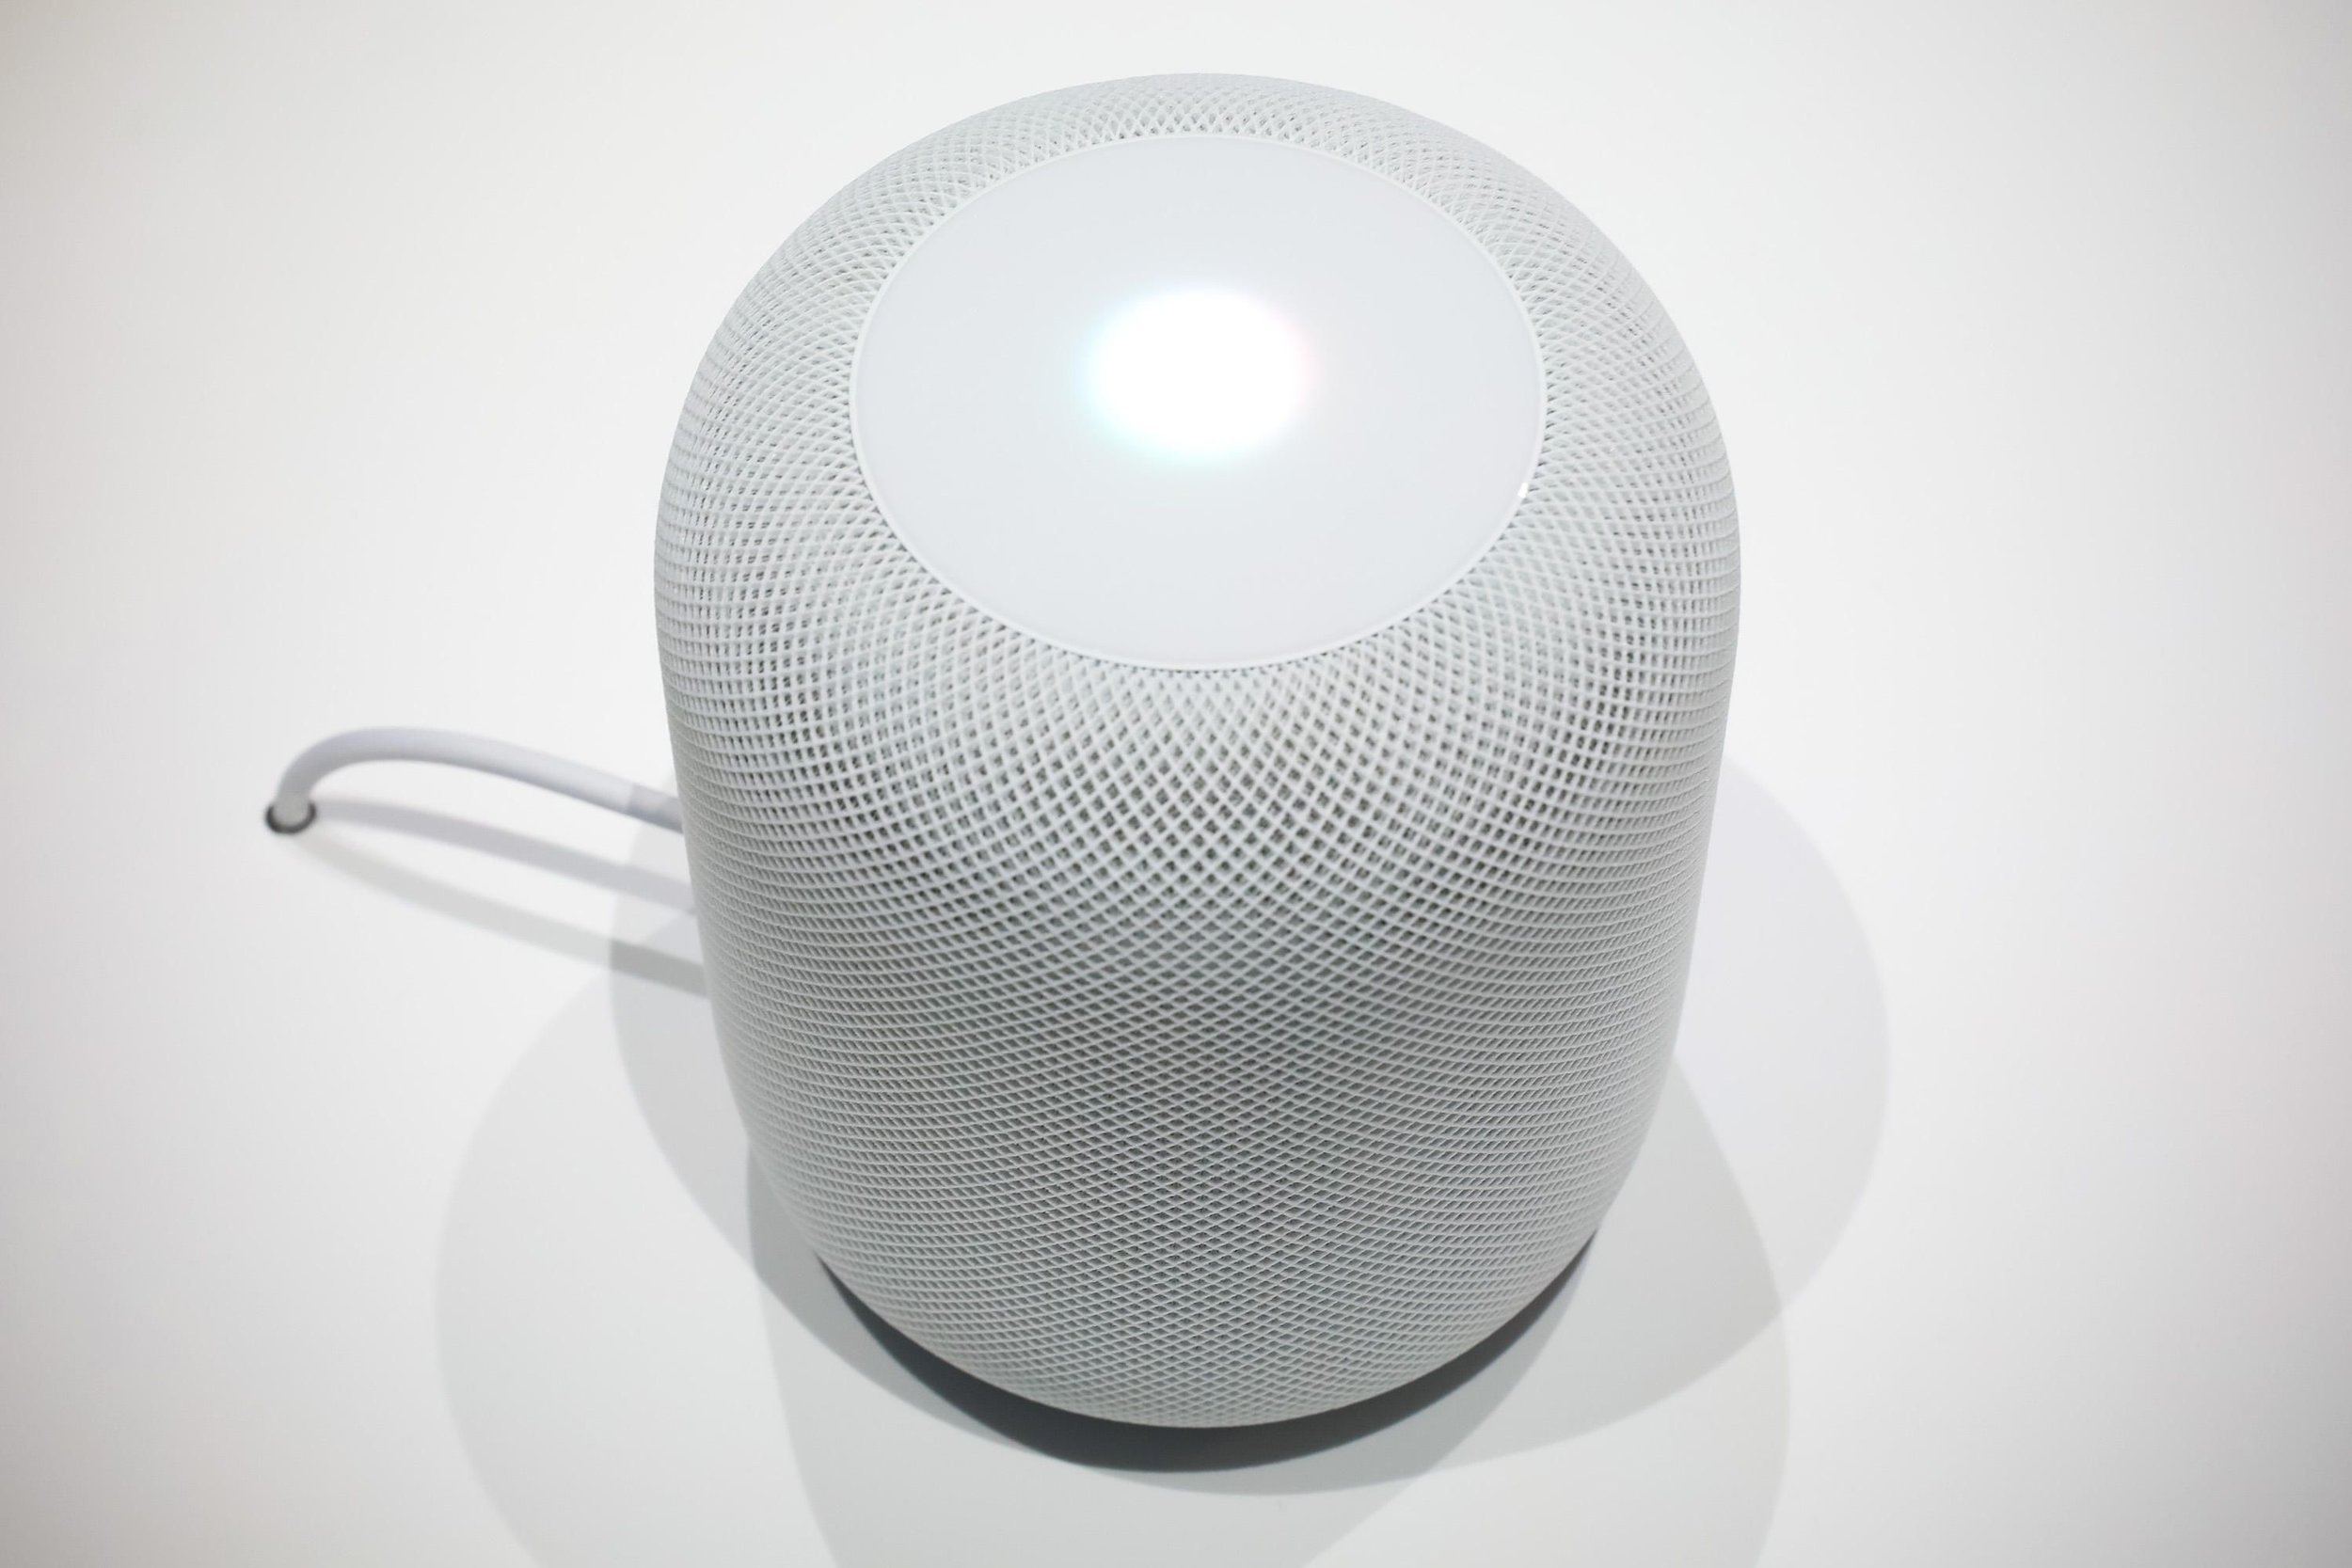 apple-wwdc-2017-homepod-speaker-3975.jpg